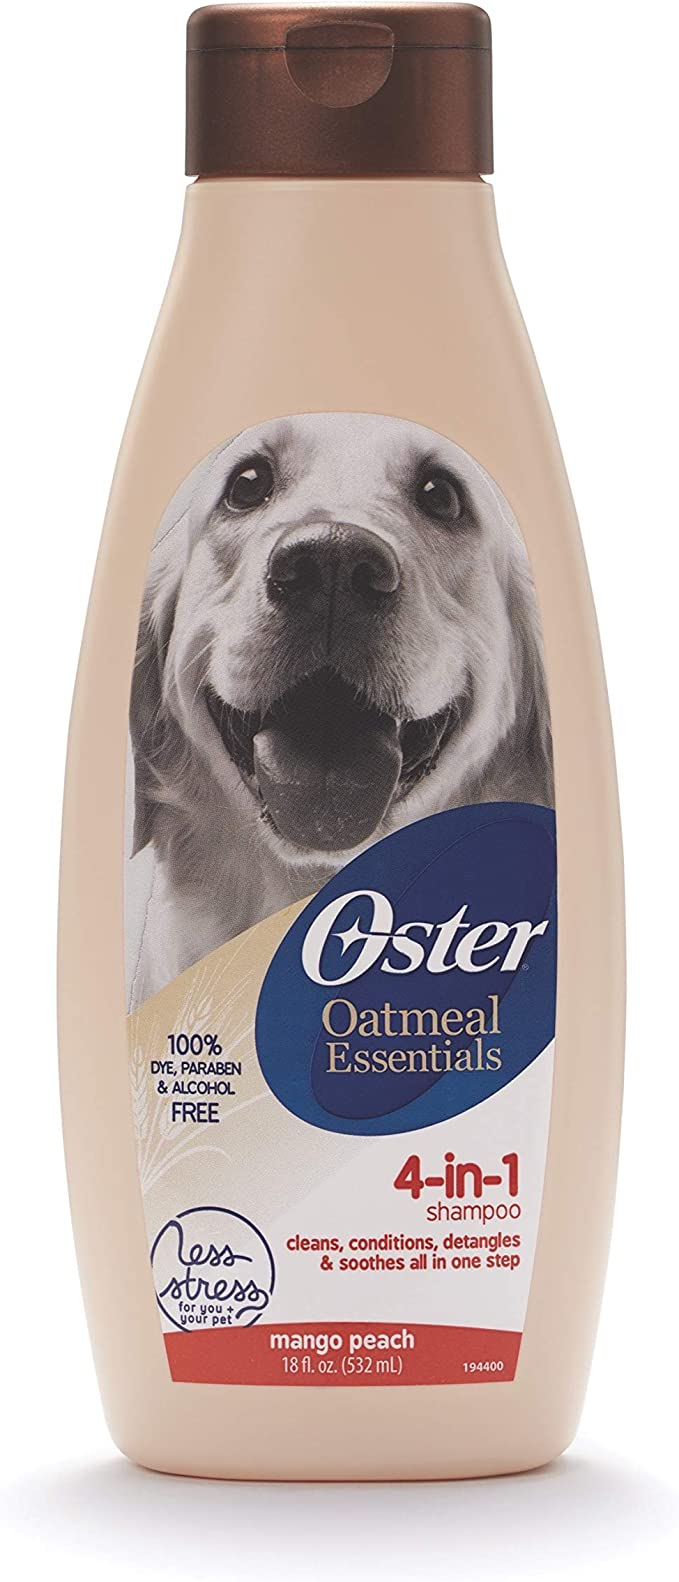 Oster Oatmeal Naturals 4-in-1 Shampoo – Best Shampoo for Pitbulls and Bulldogs with Conditioning and Detangle Properties